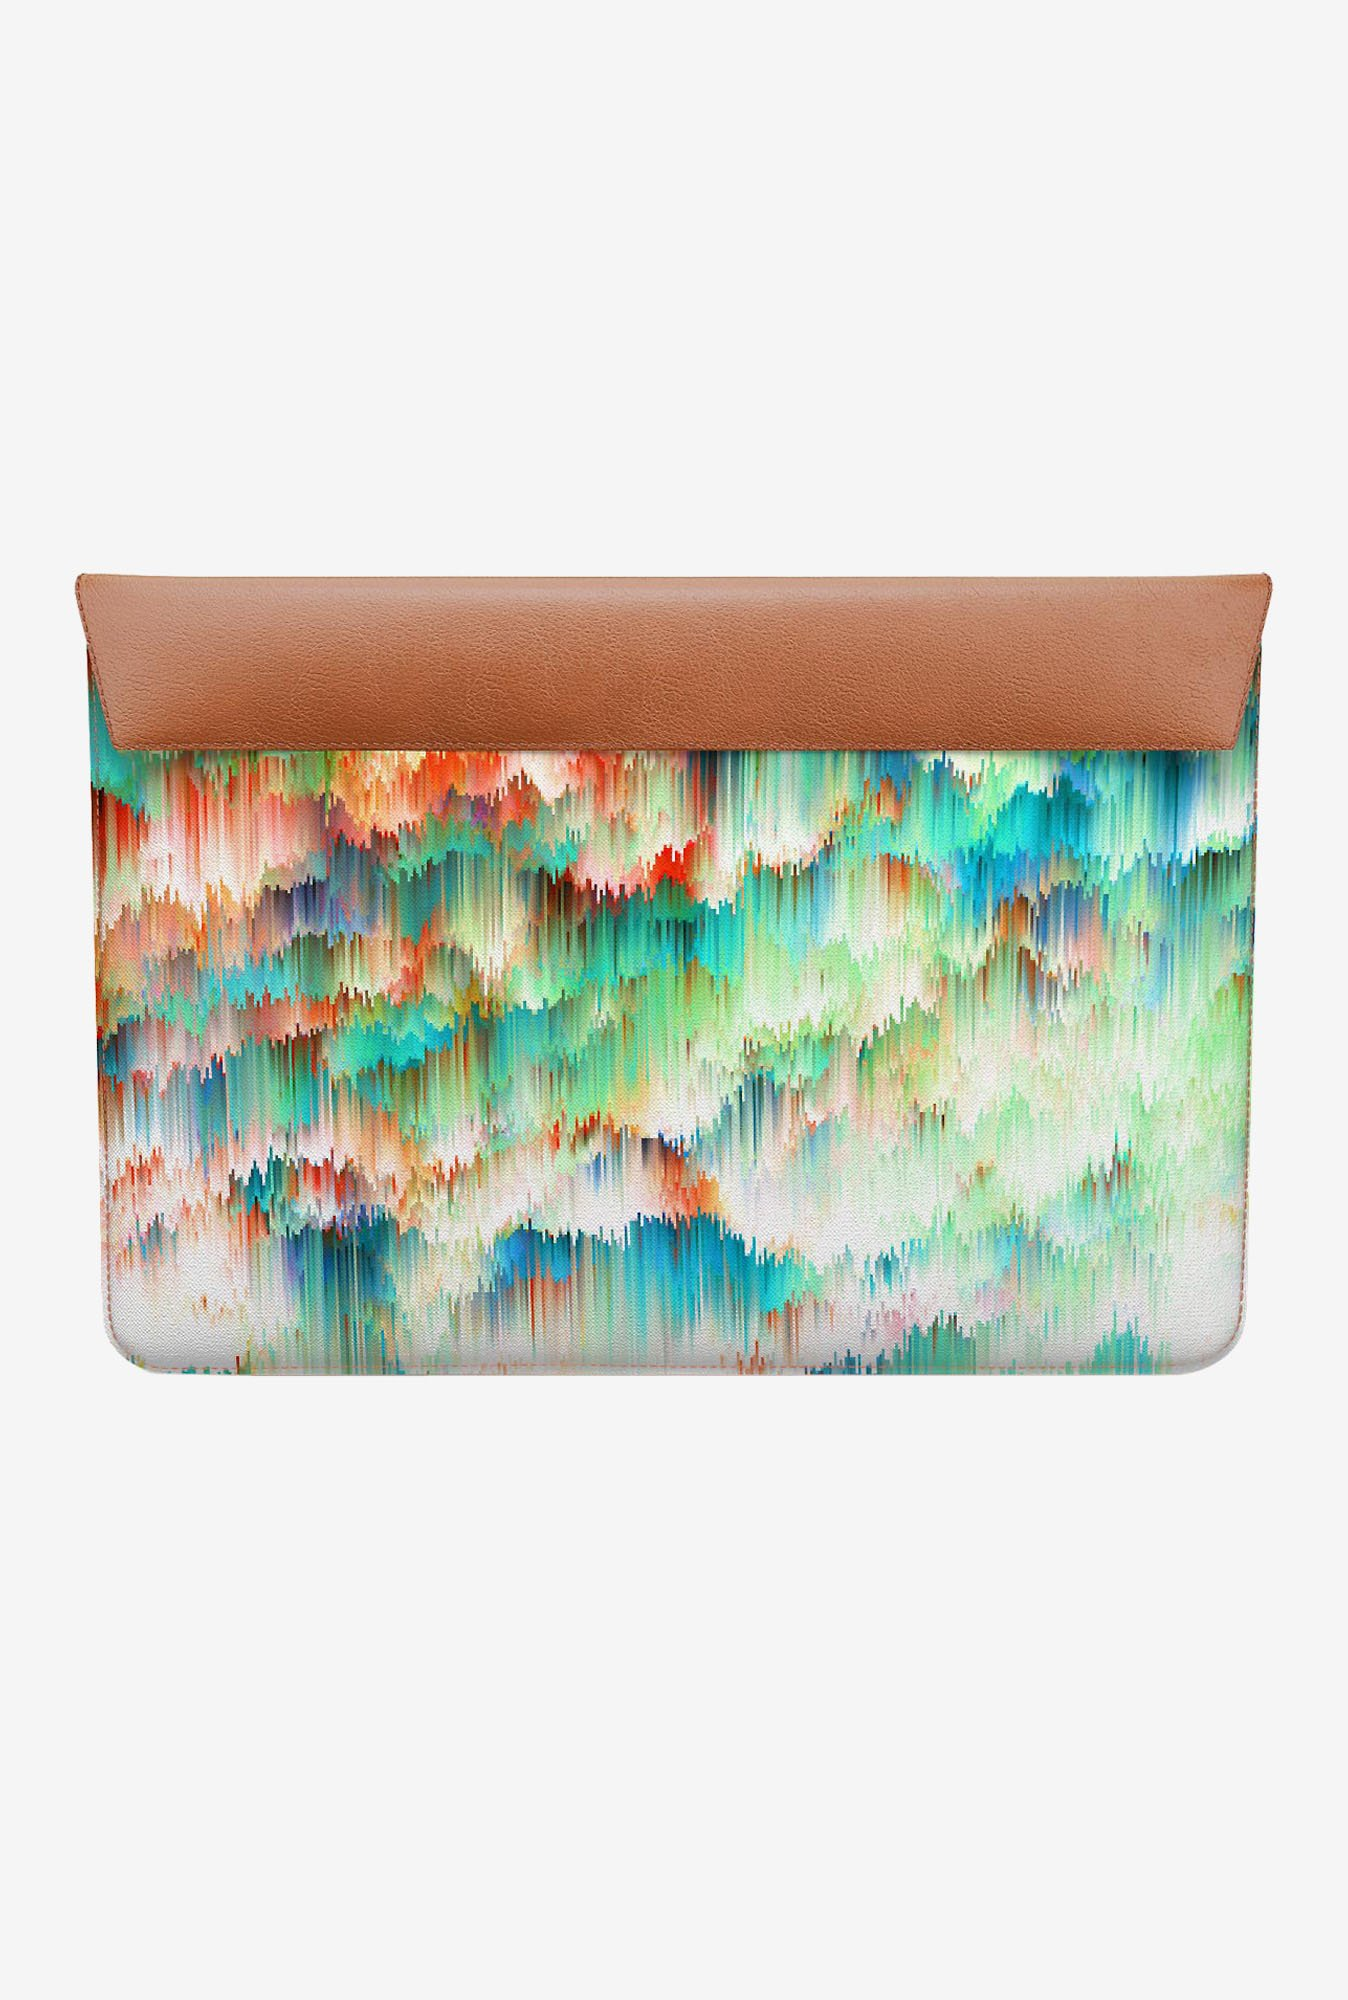 DailyObjects Raindown MacBook 12 Envelope Sleeve